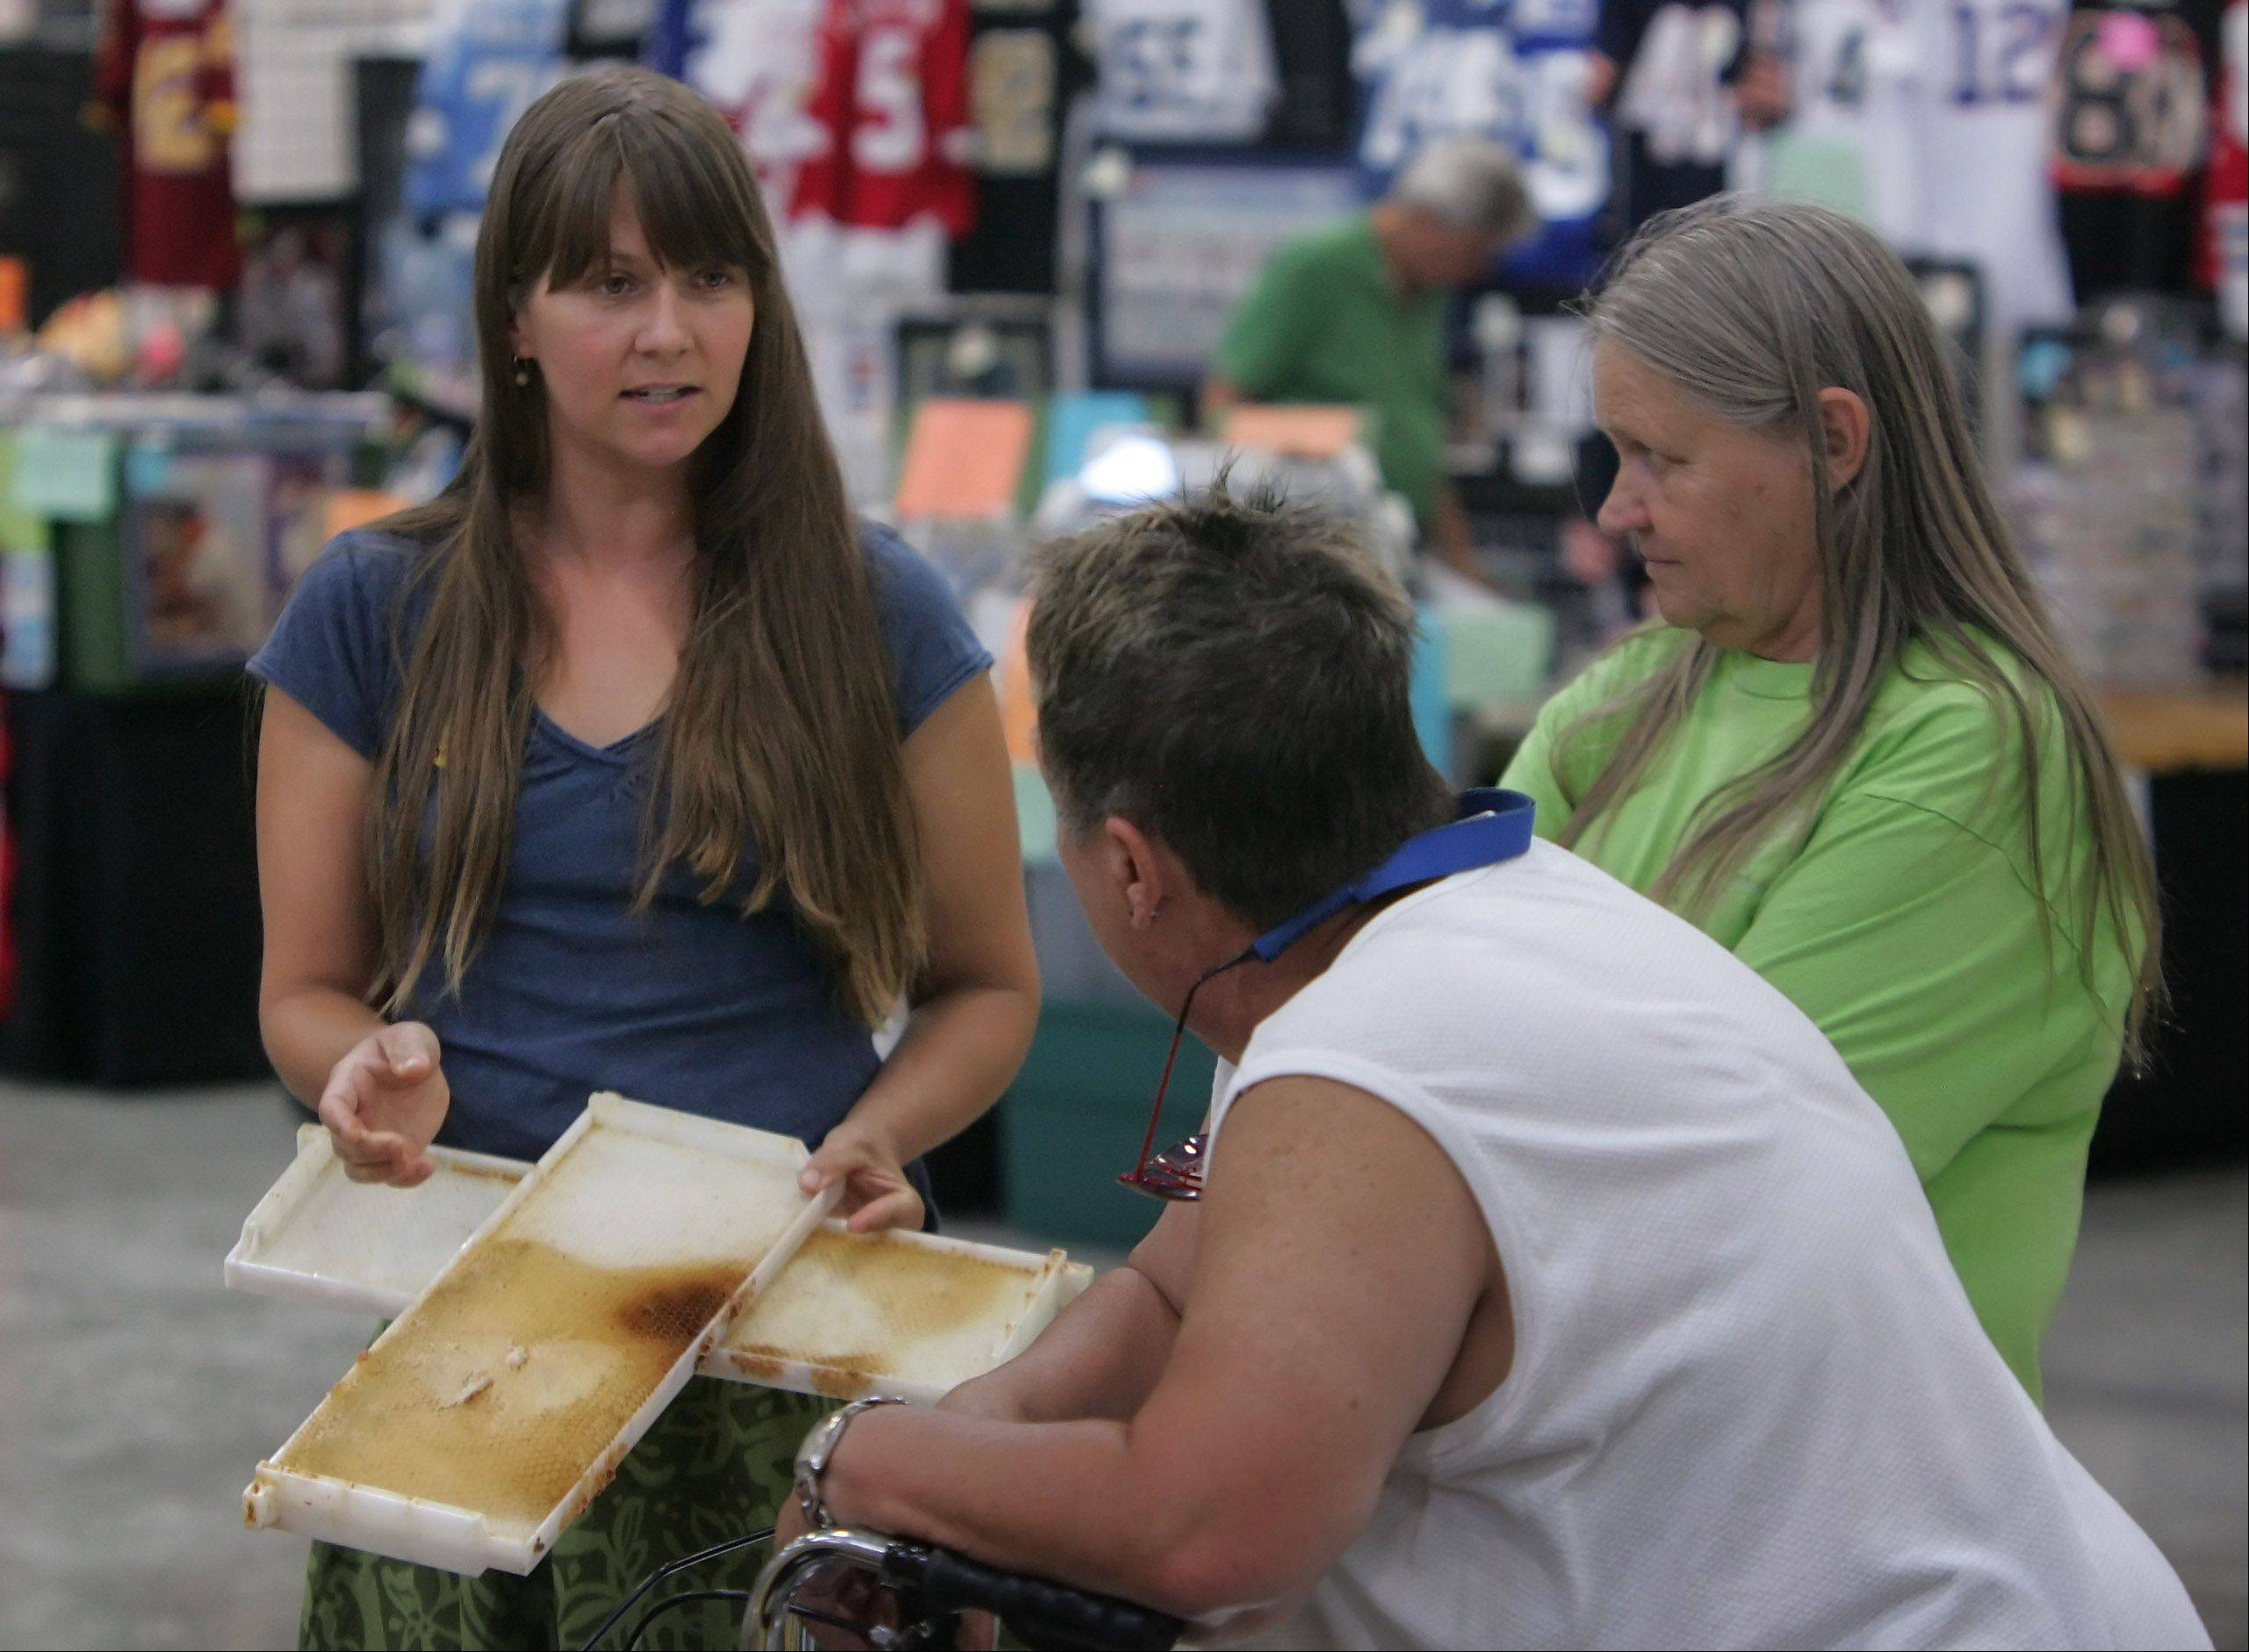 Beekeeper Sarah Westlund, of Mundelein, left, explains about beehives at the Lake County Beekeeper's Association booth during last day of the 84th Annual Lake County Fair Sunday in Grayslake.